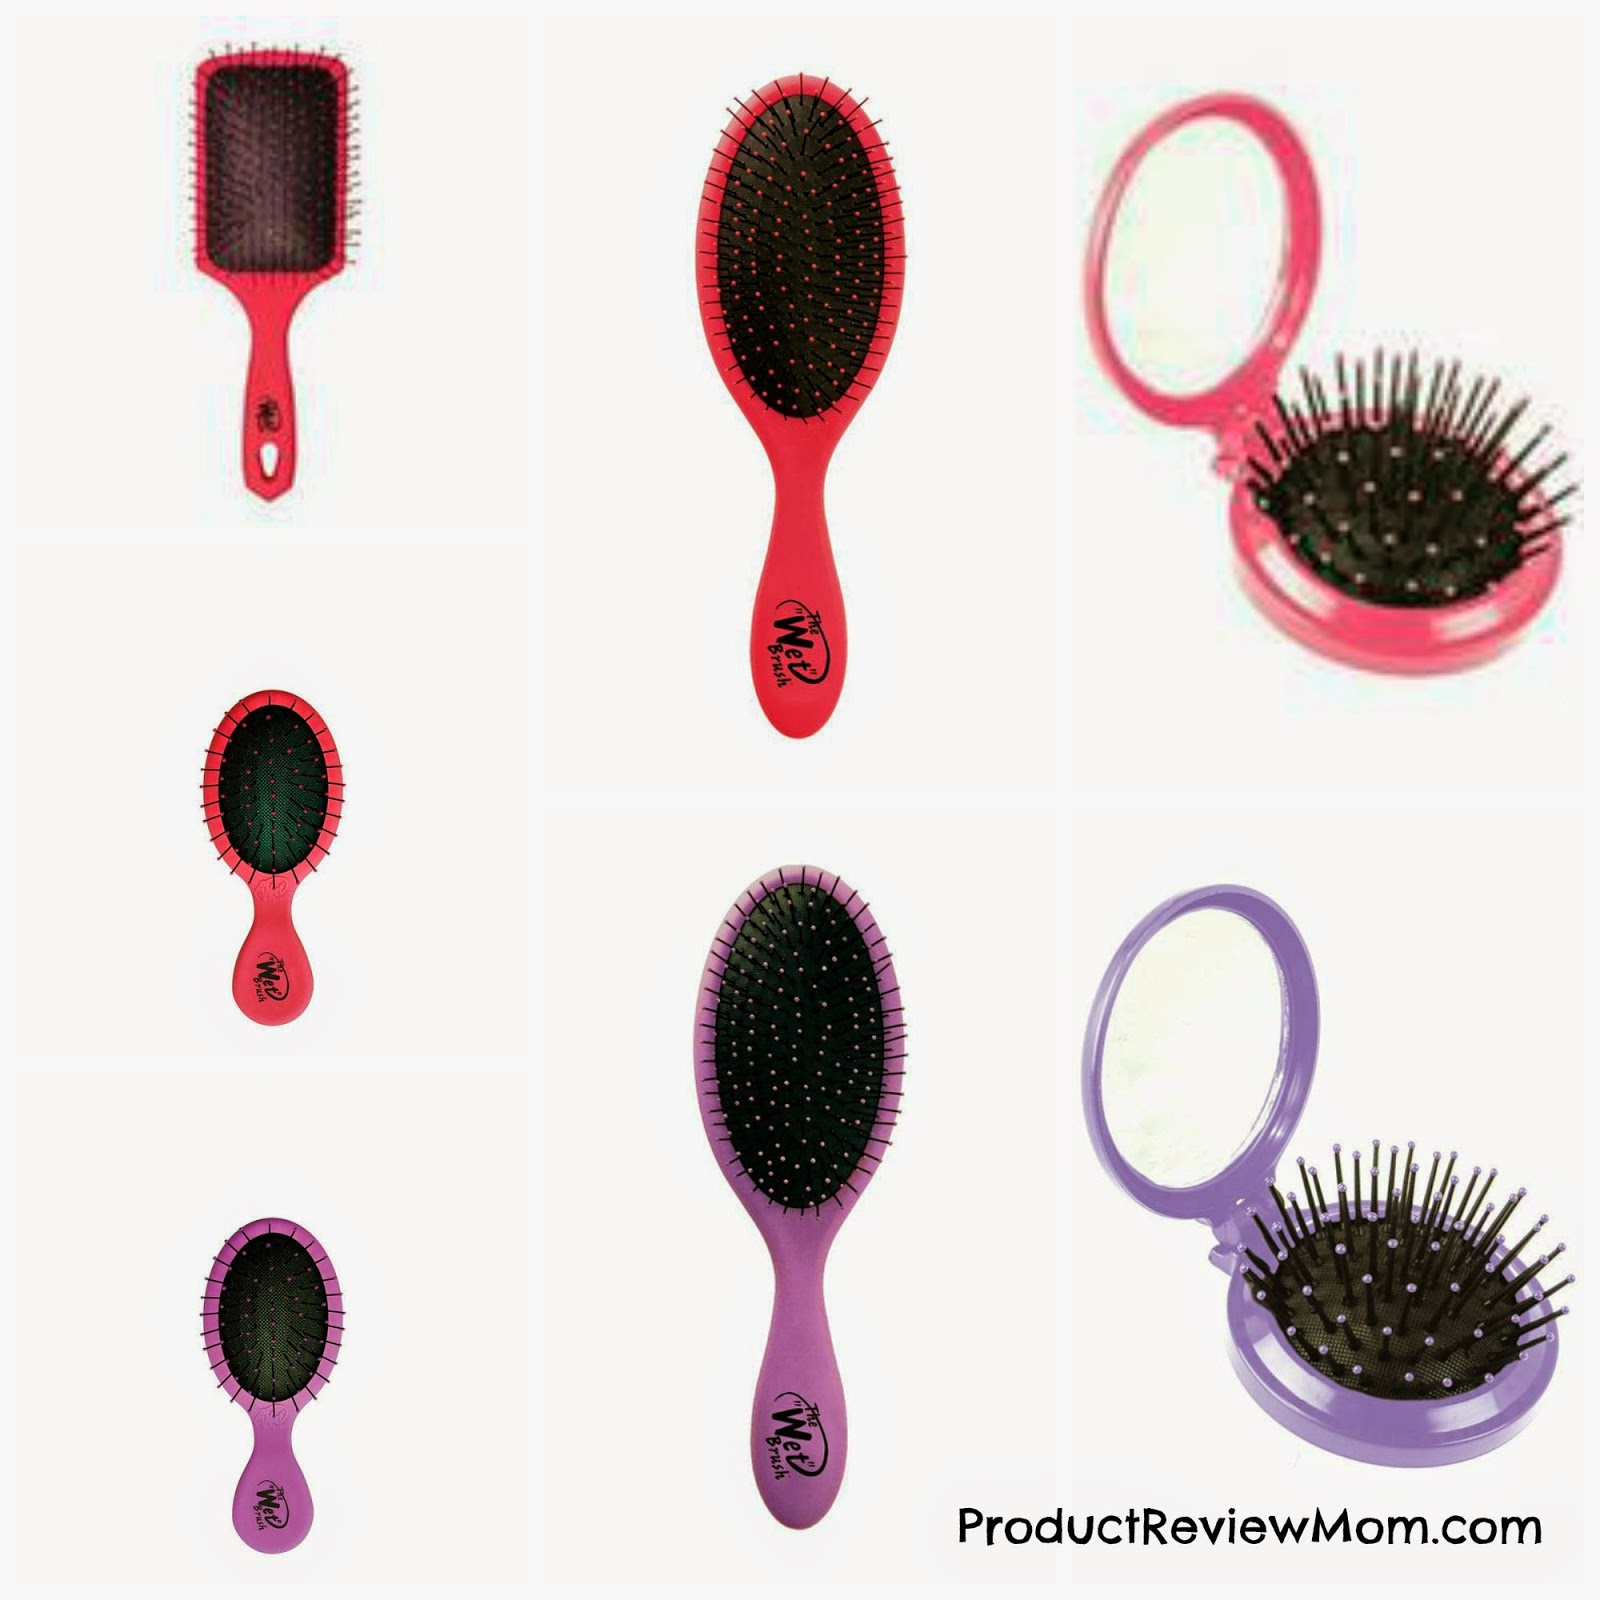 The Wet Brush Review and Giveaway Ending 6/7 via ProductReviewMom.com